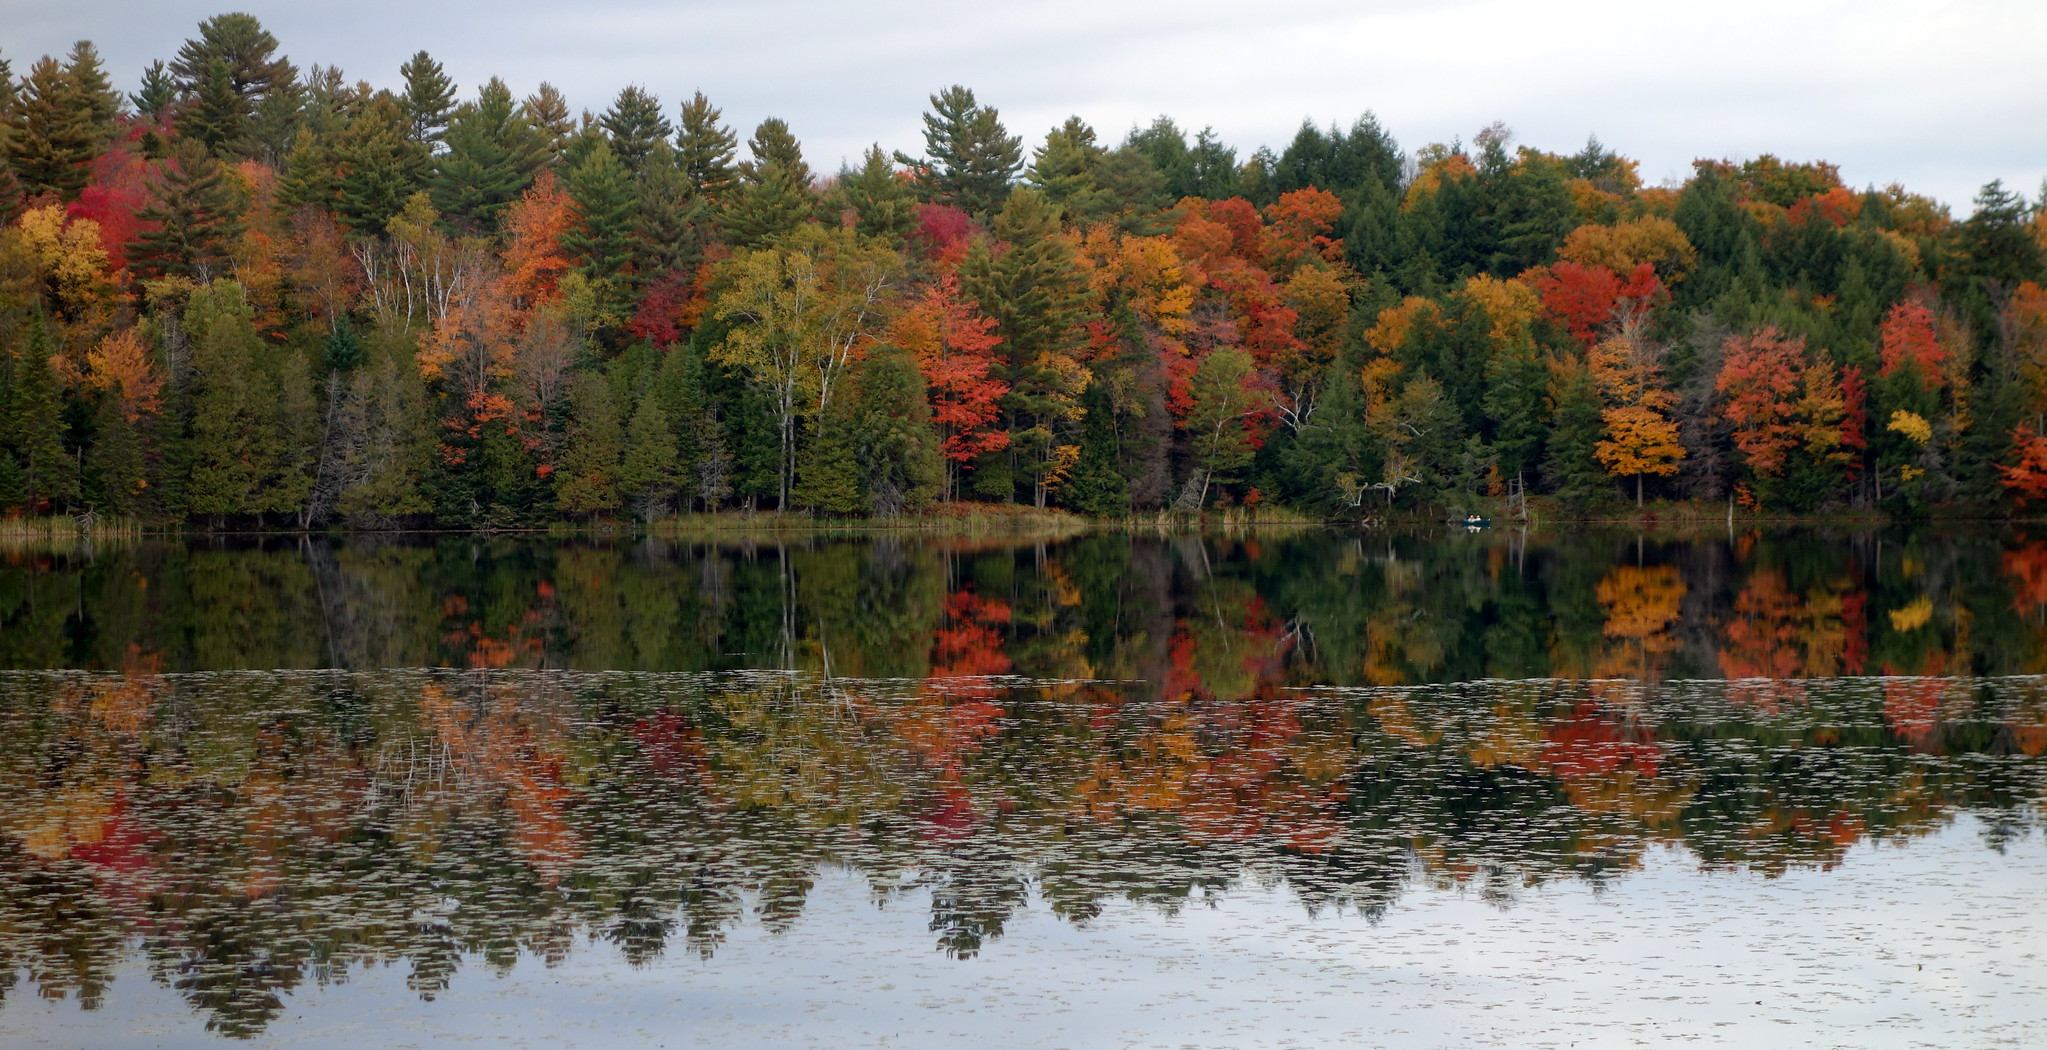 Bliss Pond, Calais, Vermont   by krisknow